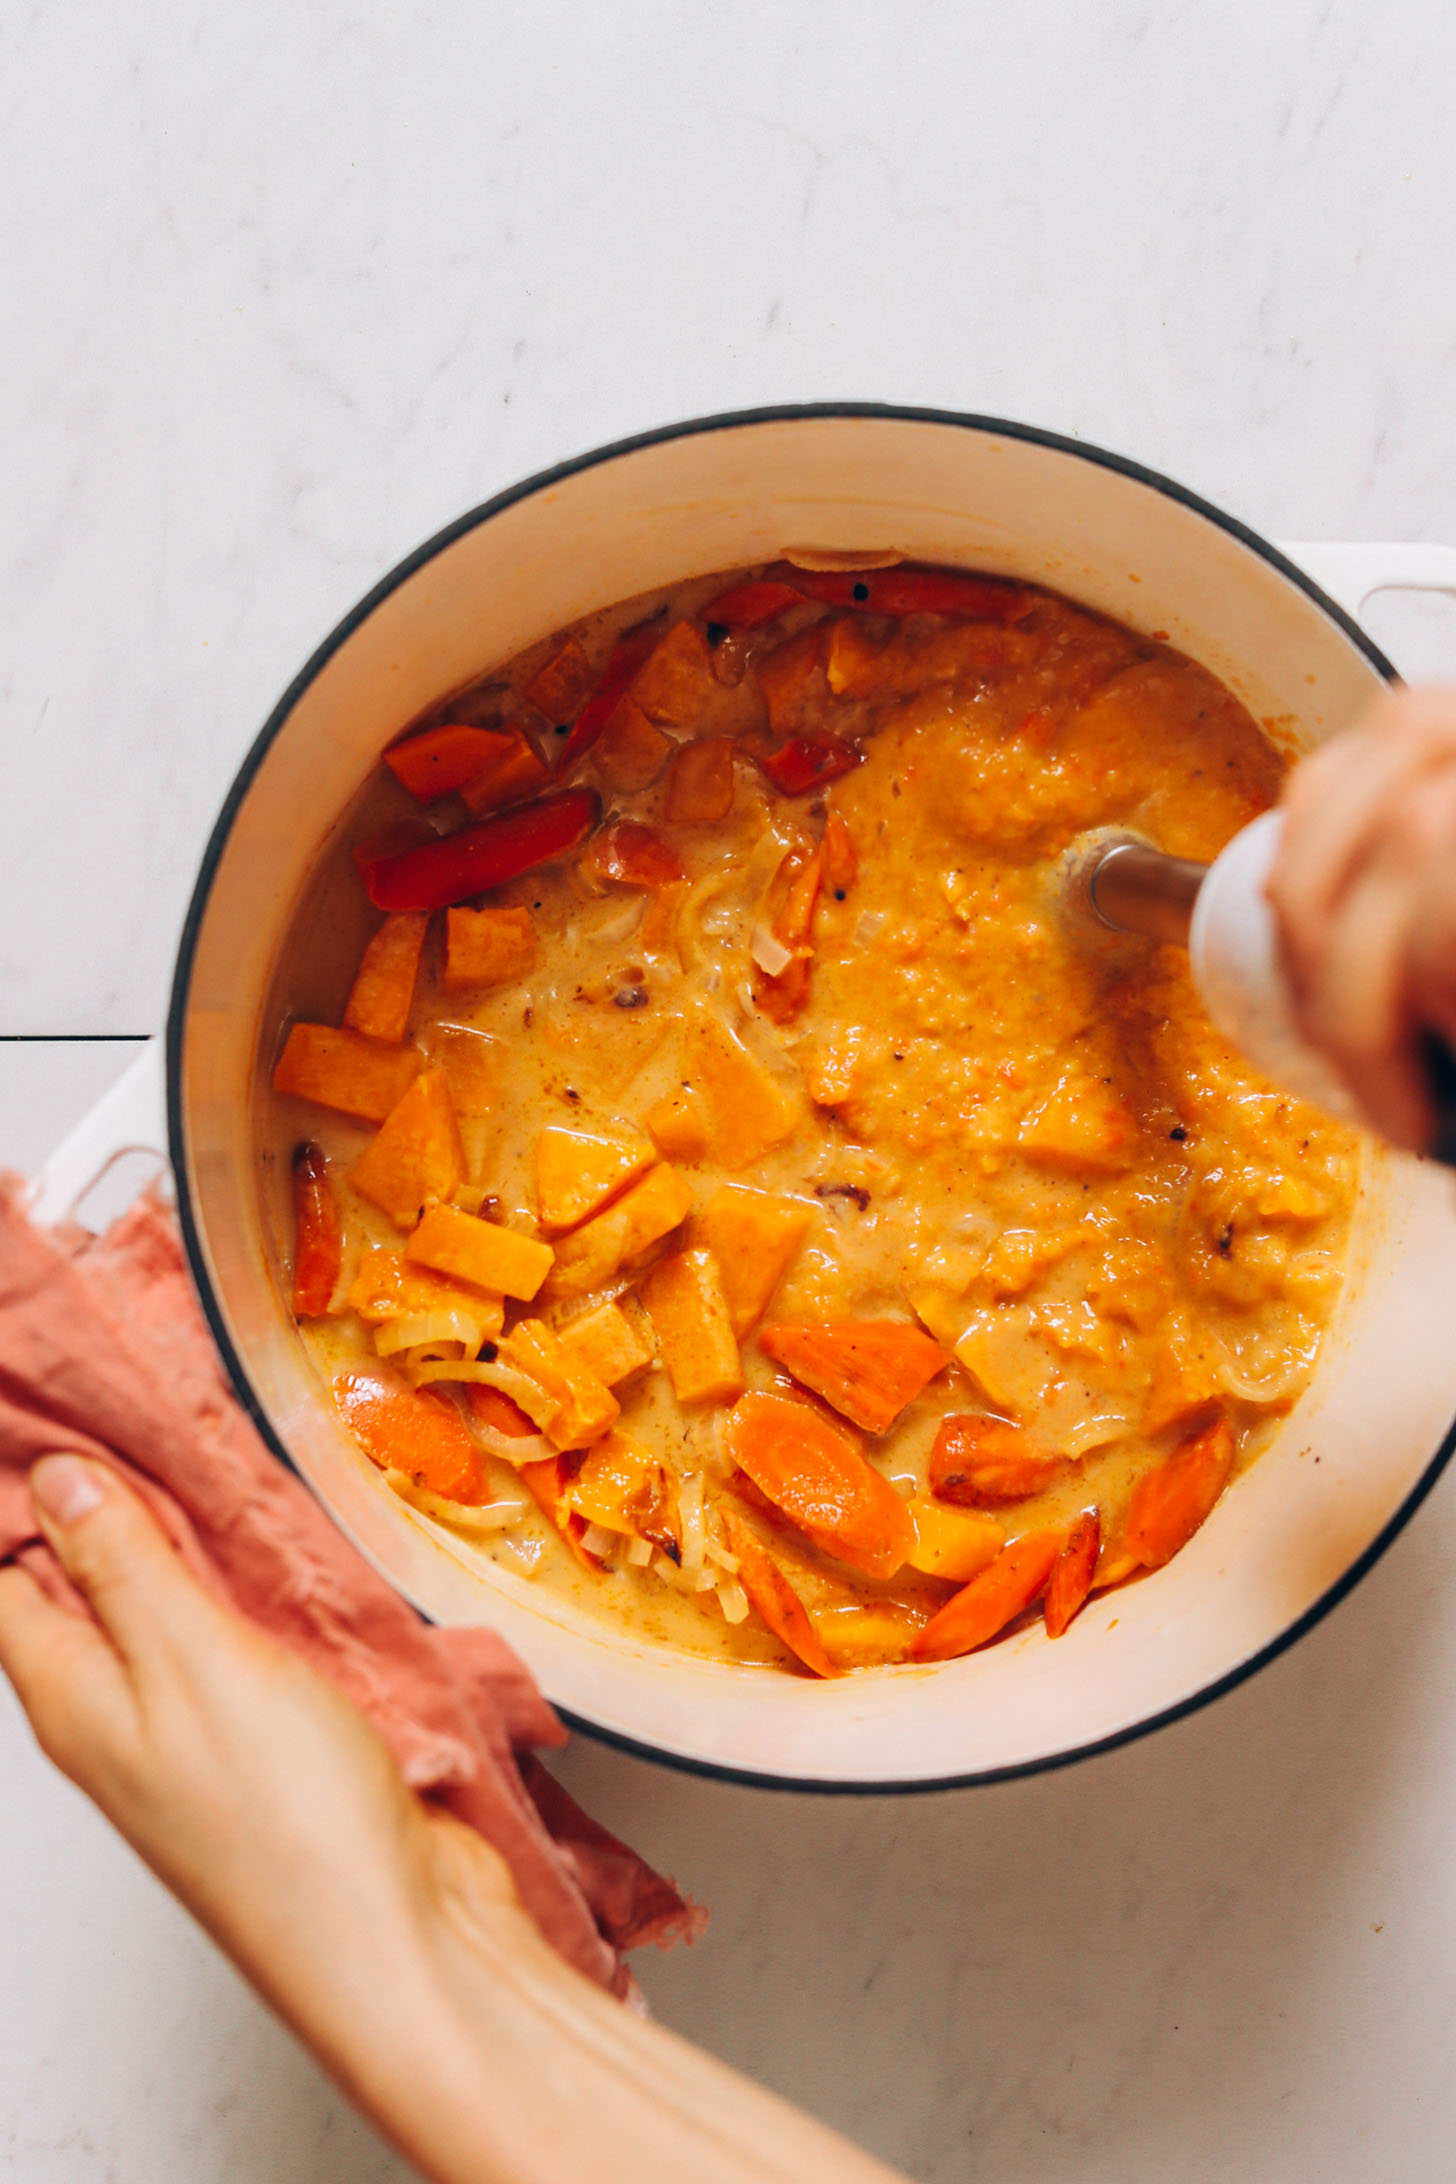 Using an immersion blender to purée a pot of roasted butternut squash soup